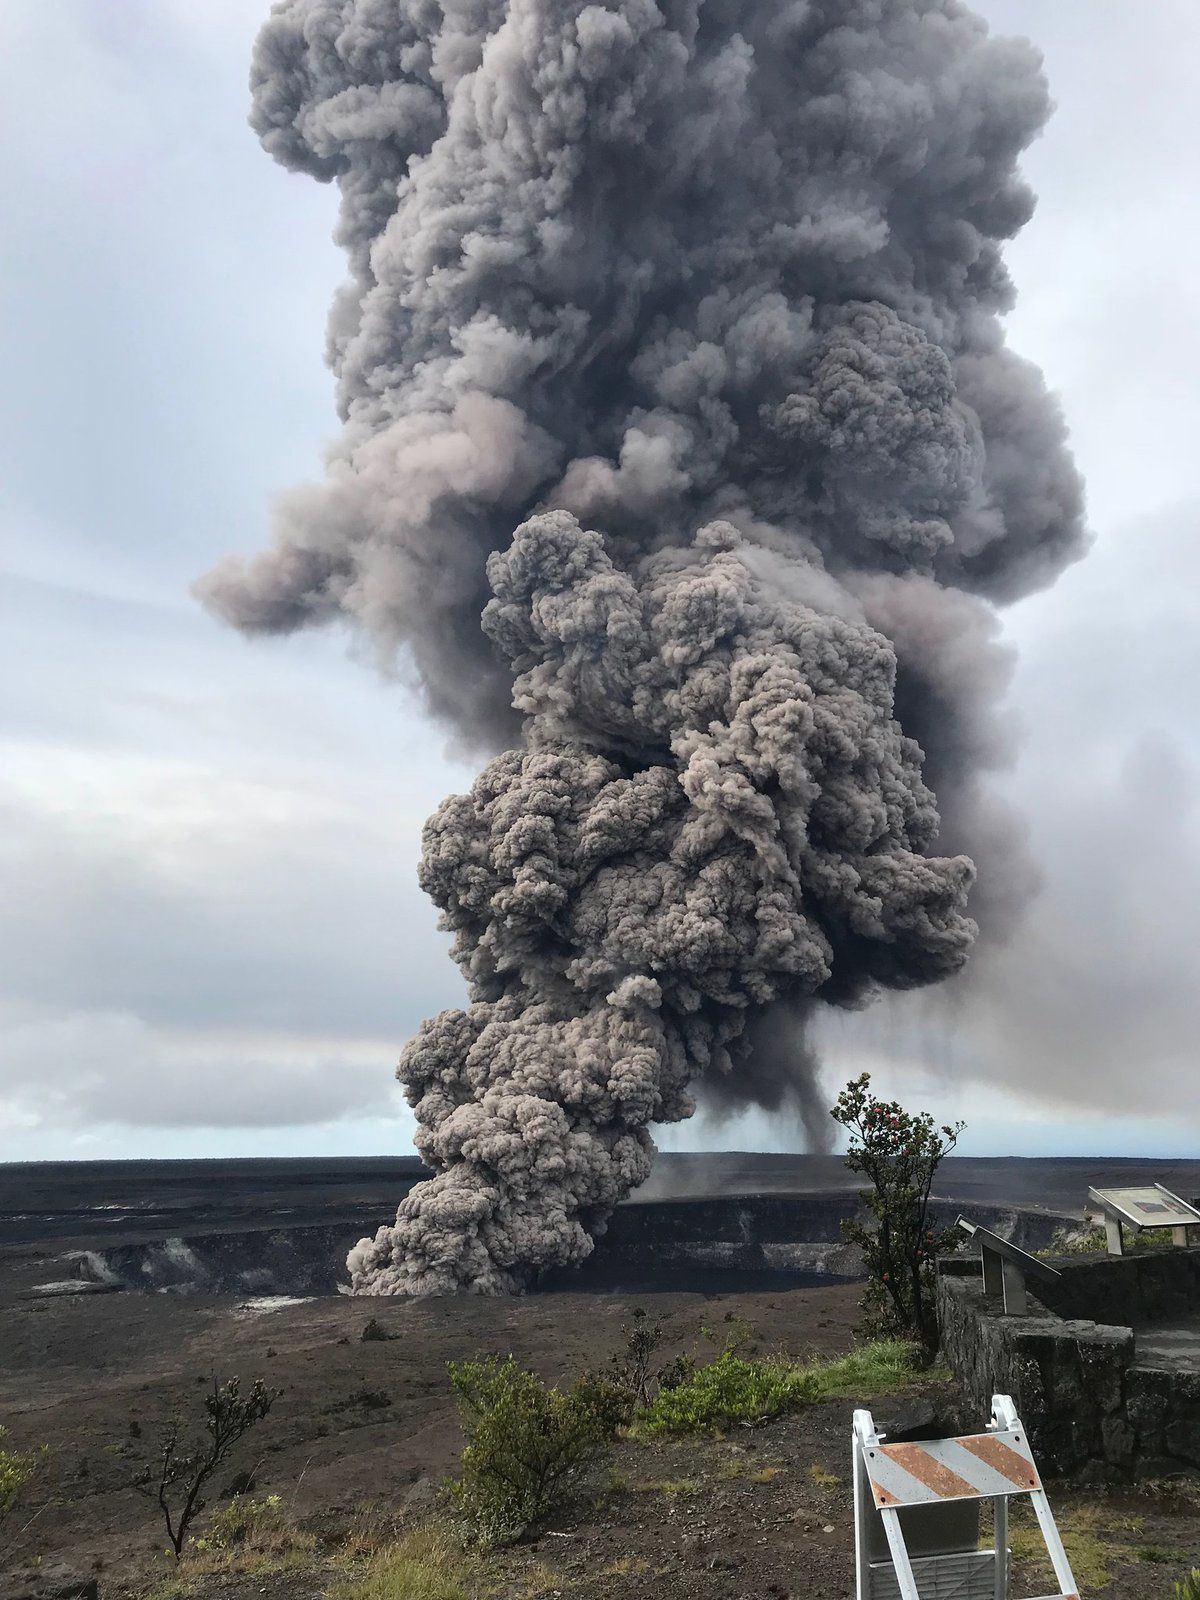 Kilauea - cratère Overlook - panache de cendres consécutif à un effondrement de roches ce 09.05.2018 / 8h29 - photo HVO - USGS